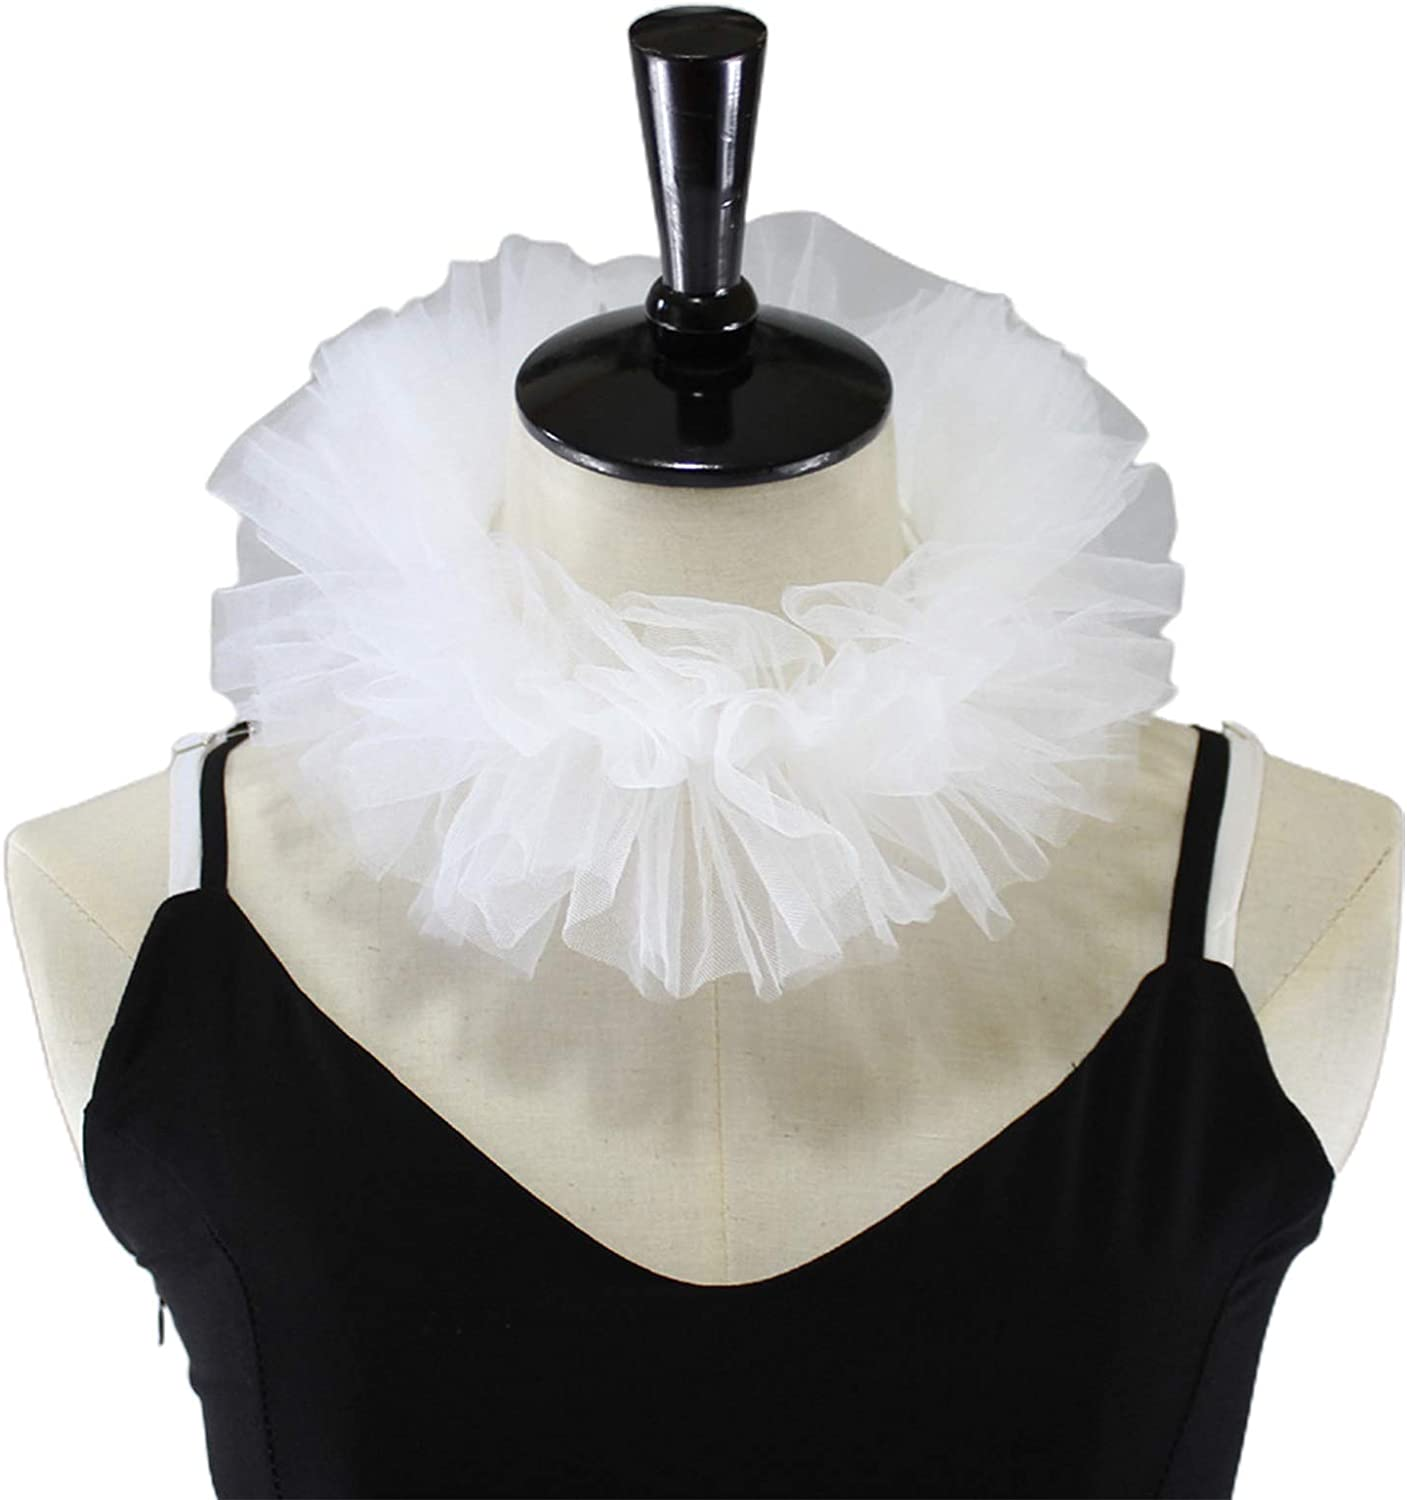 YOUSIKE Ruffled Necklace, Women Renaissance Tulle Fluffy Ruffled Fake Collar Vintage Layered Mesh Small Neck Ruff Lace-Up Decorative Clown Choker Wrap Cosplay Costume Props